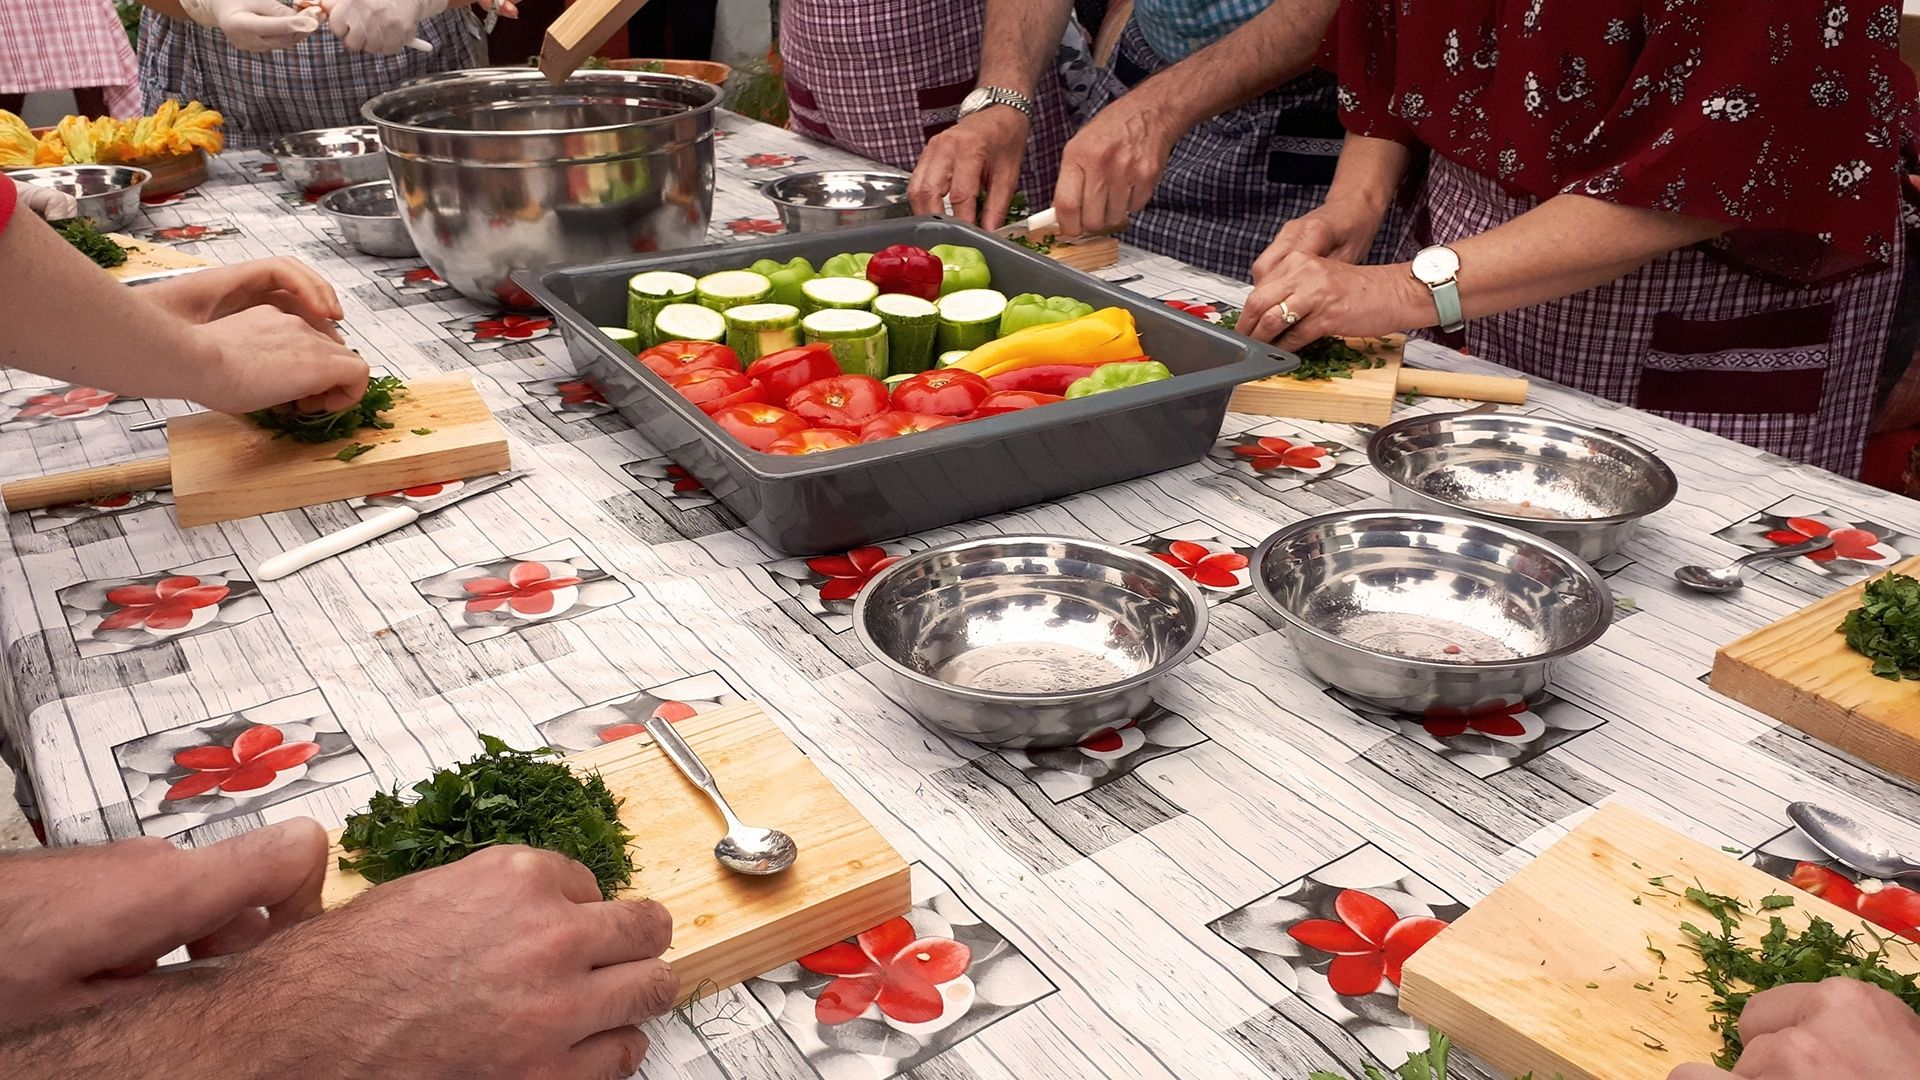 Tours in Chania - Cooking class